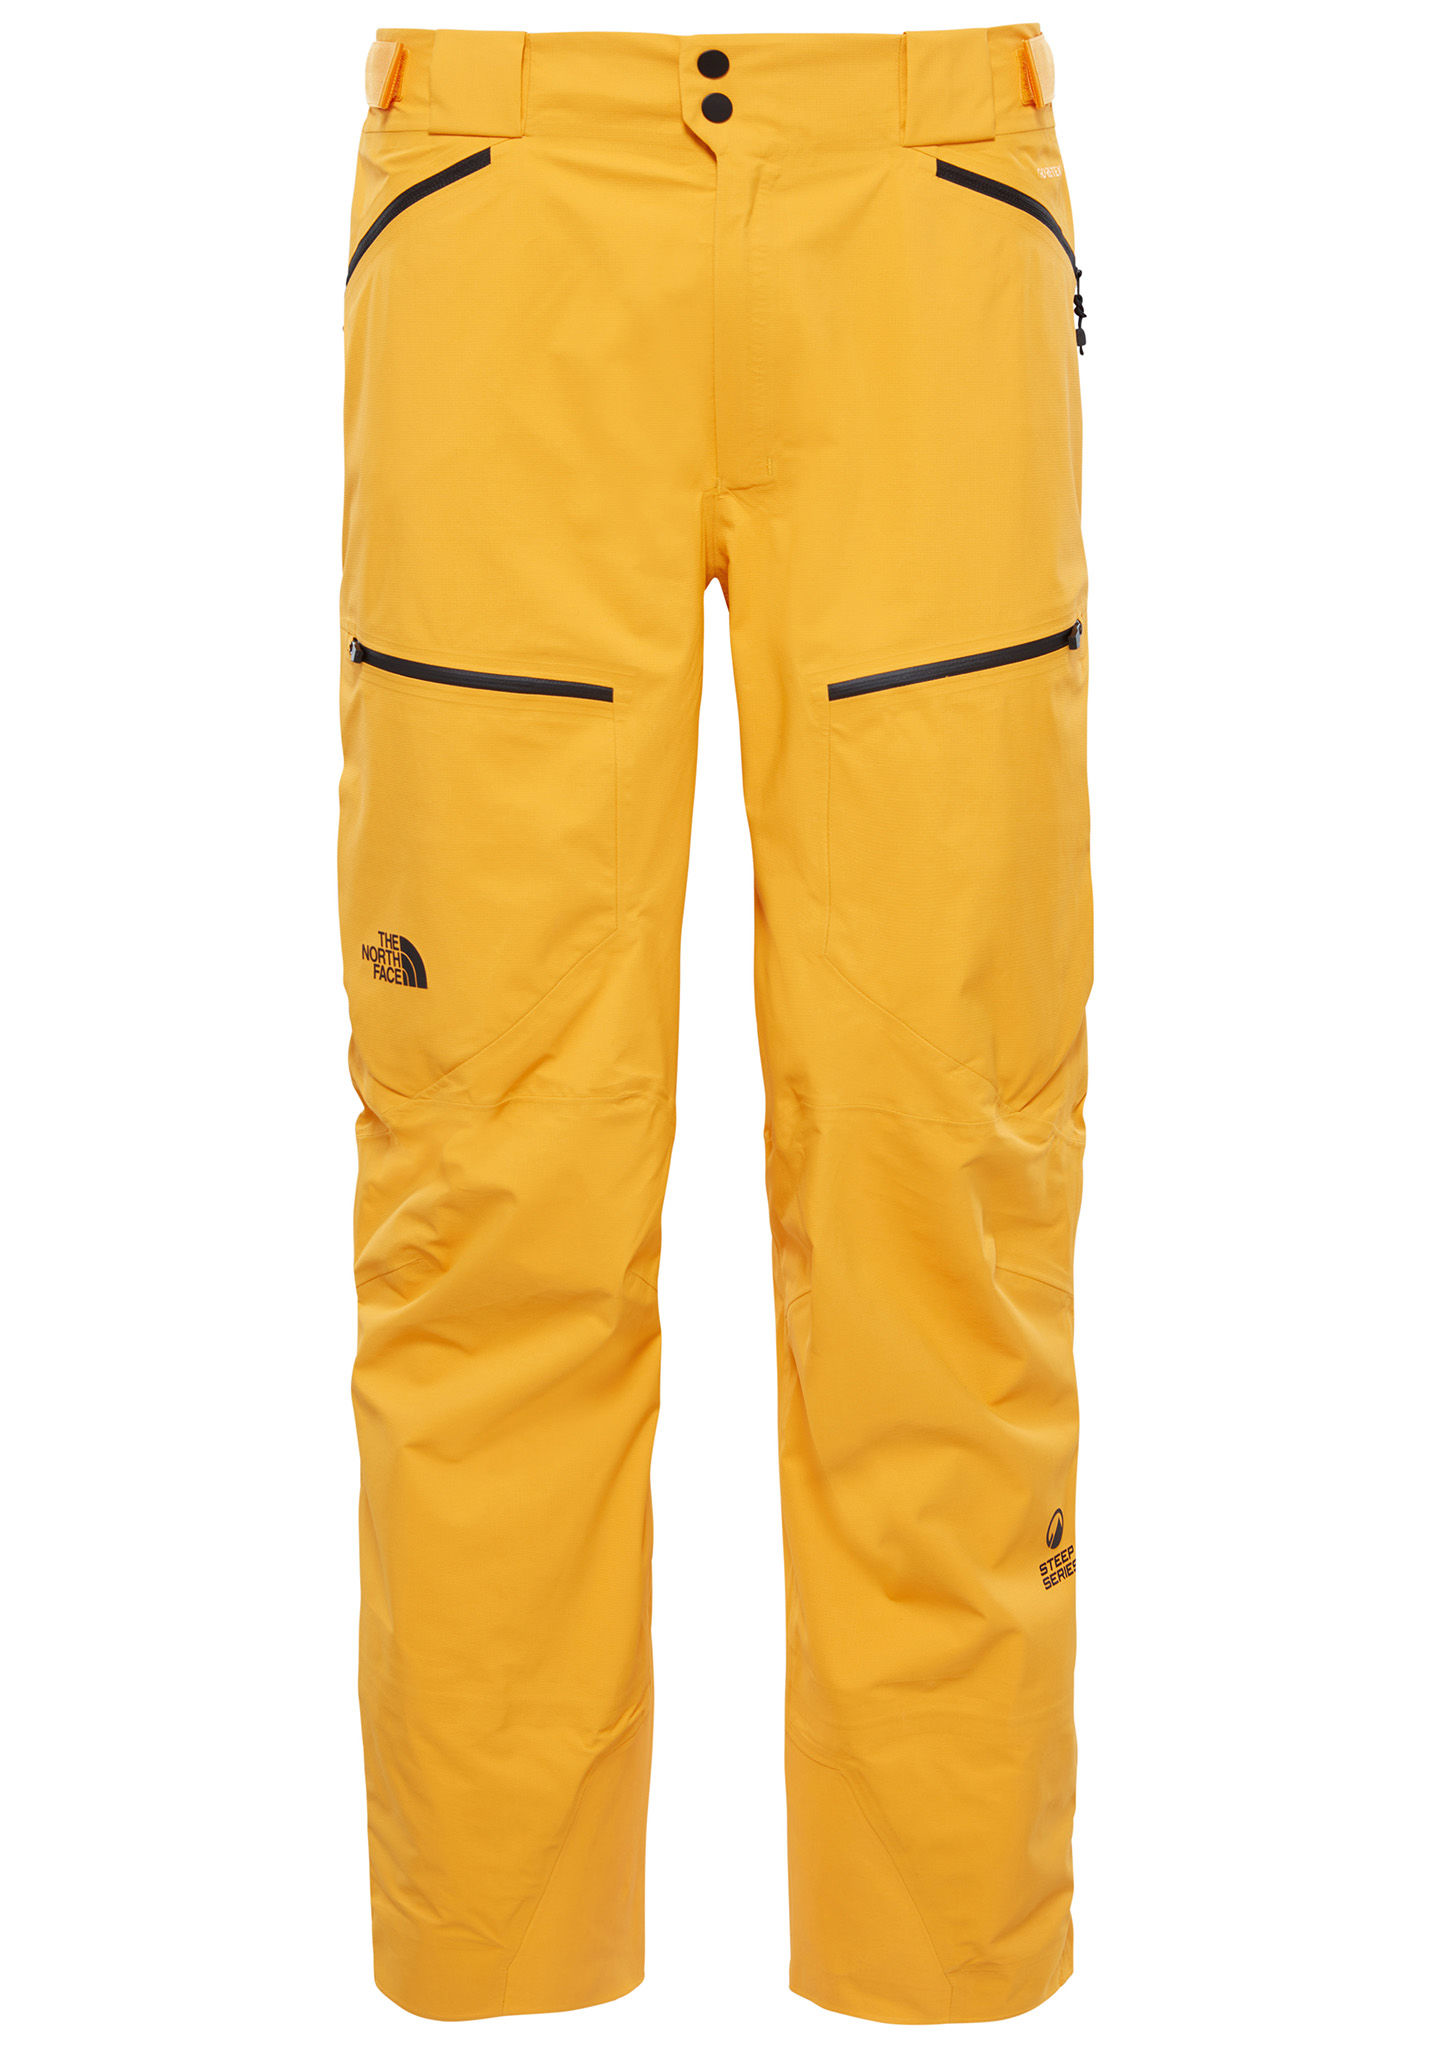 Purist Pantalone Face Arancione The Snowboard Per North Uomo nPgaWT